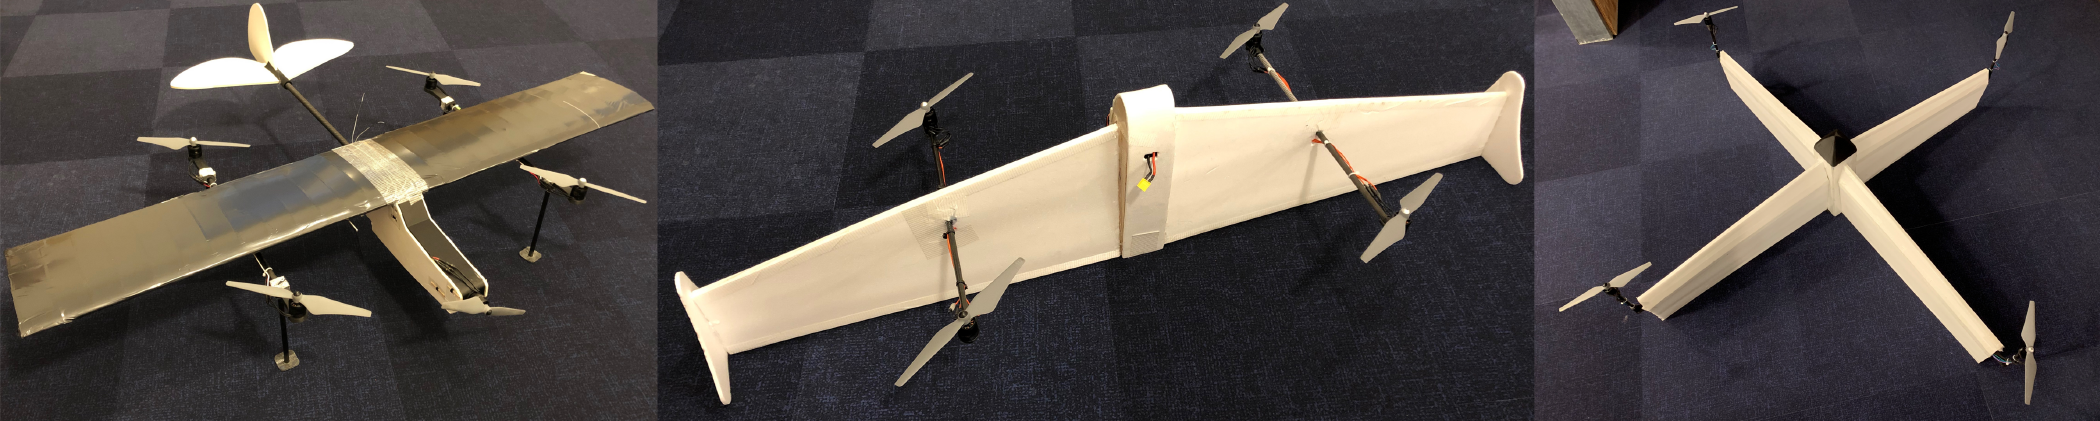 model hybrid drone built on computer simulation